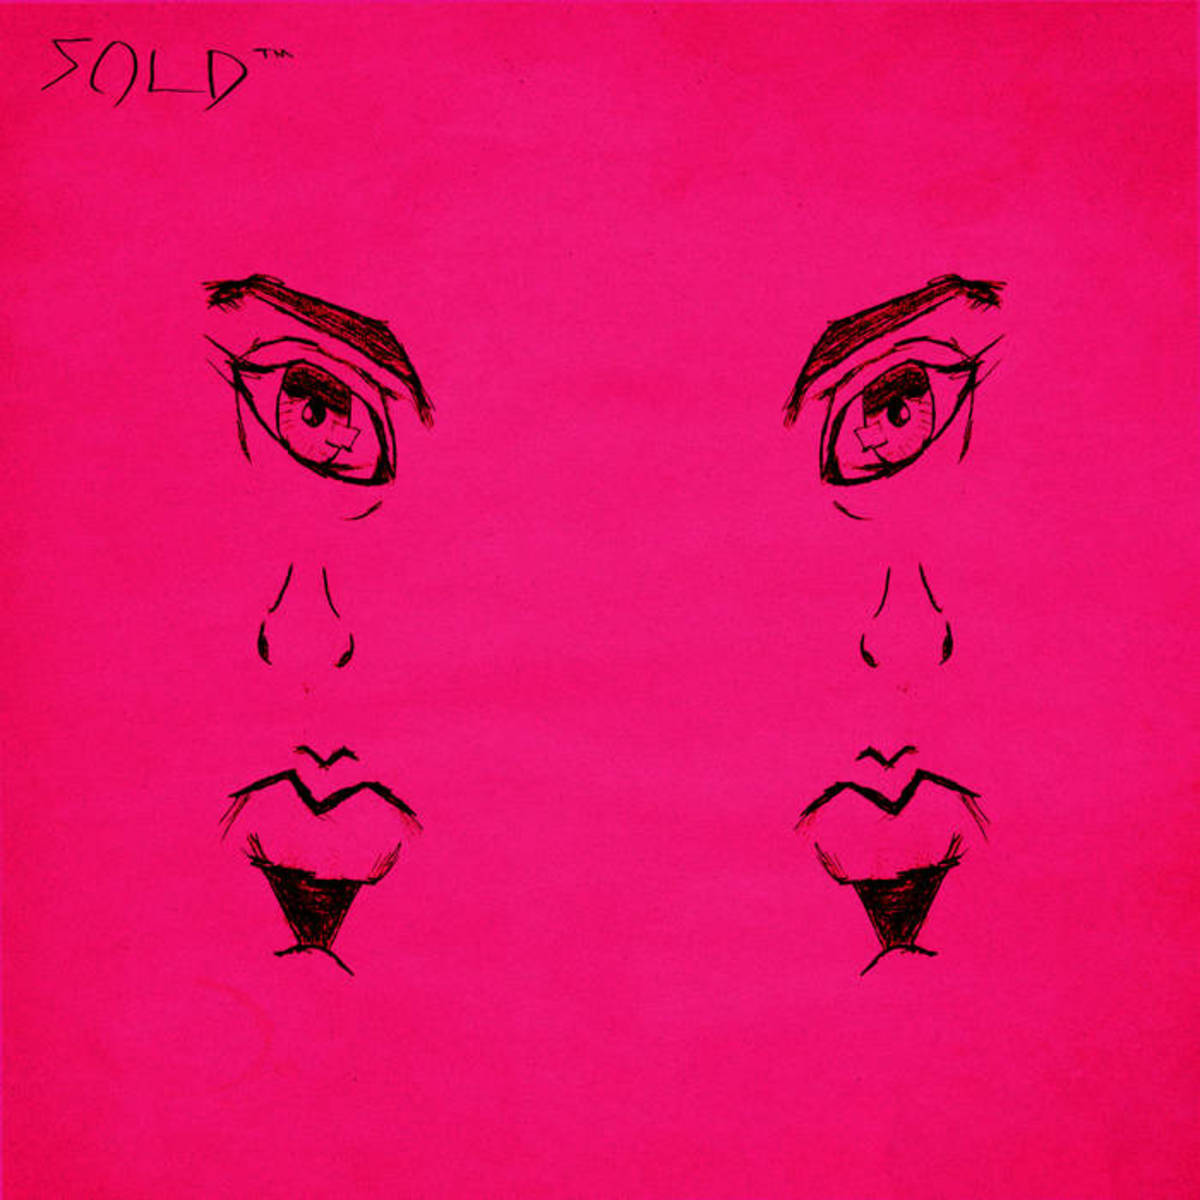 Synth Album Review: SOLDNOTTOLD,